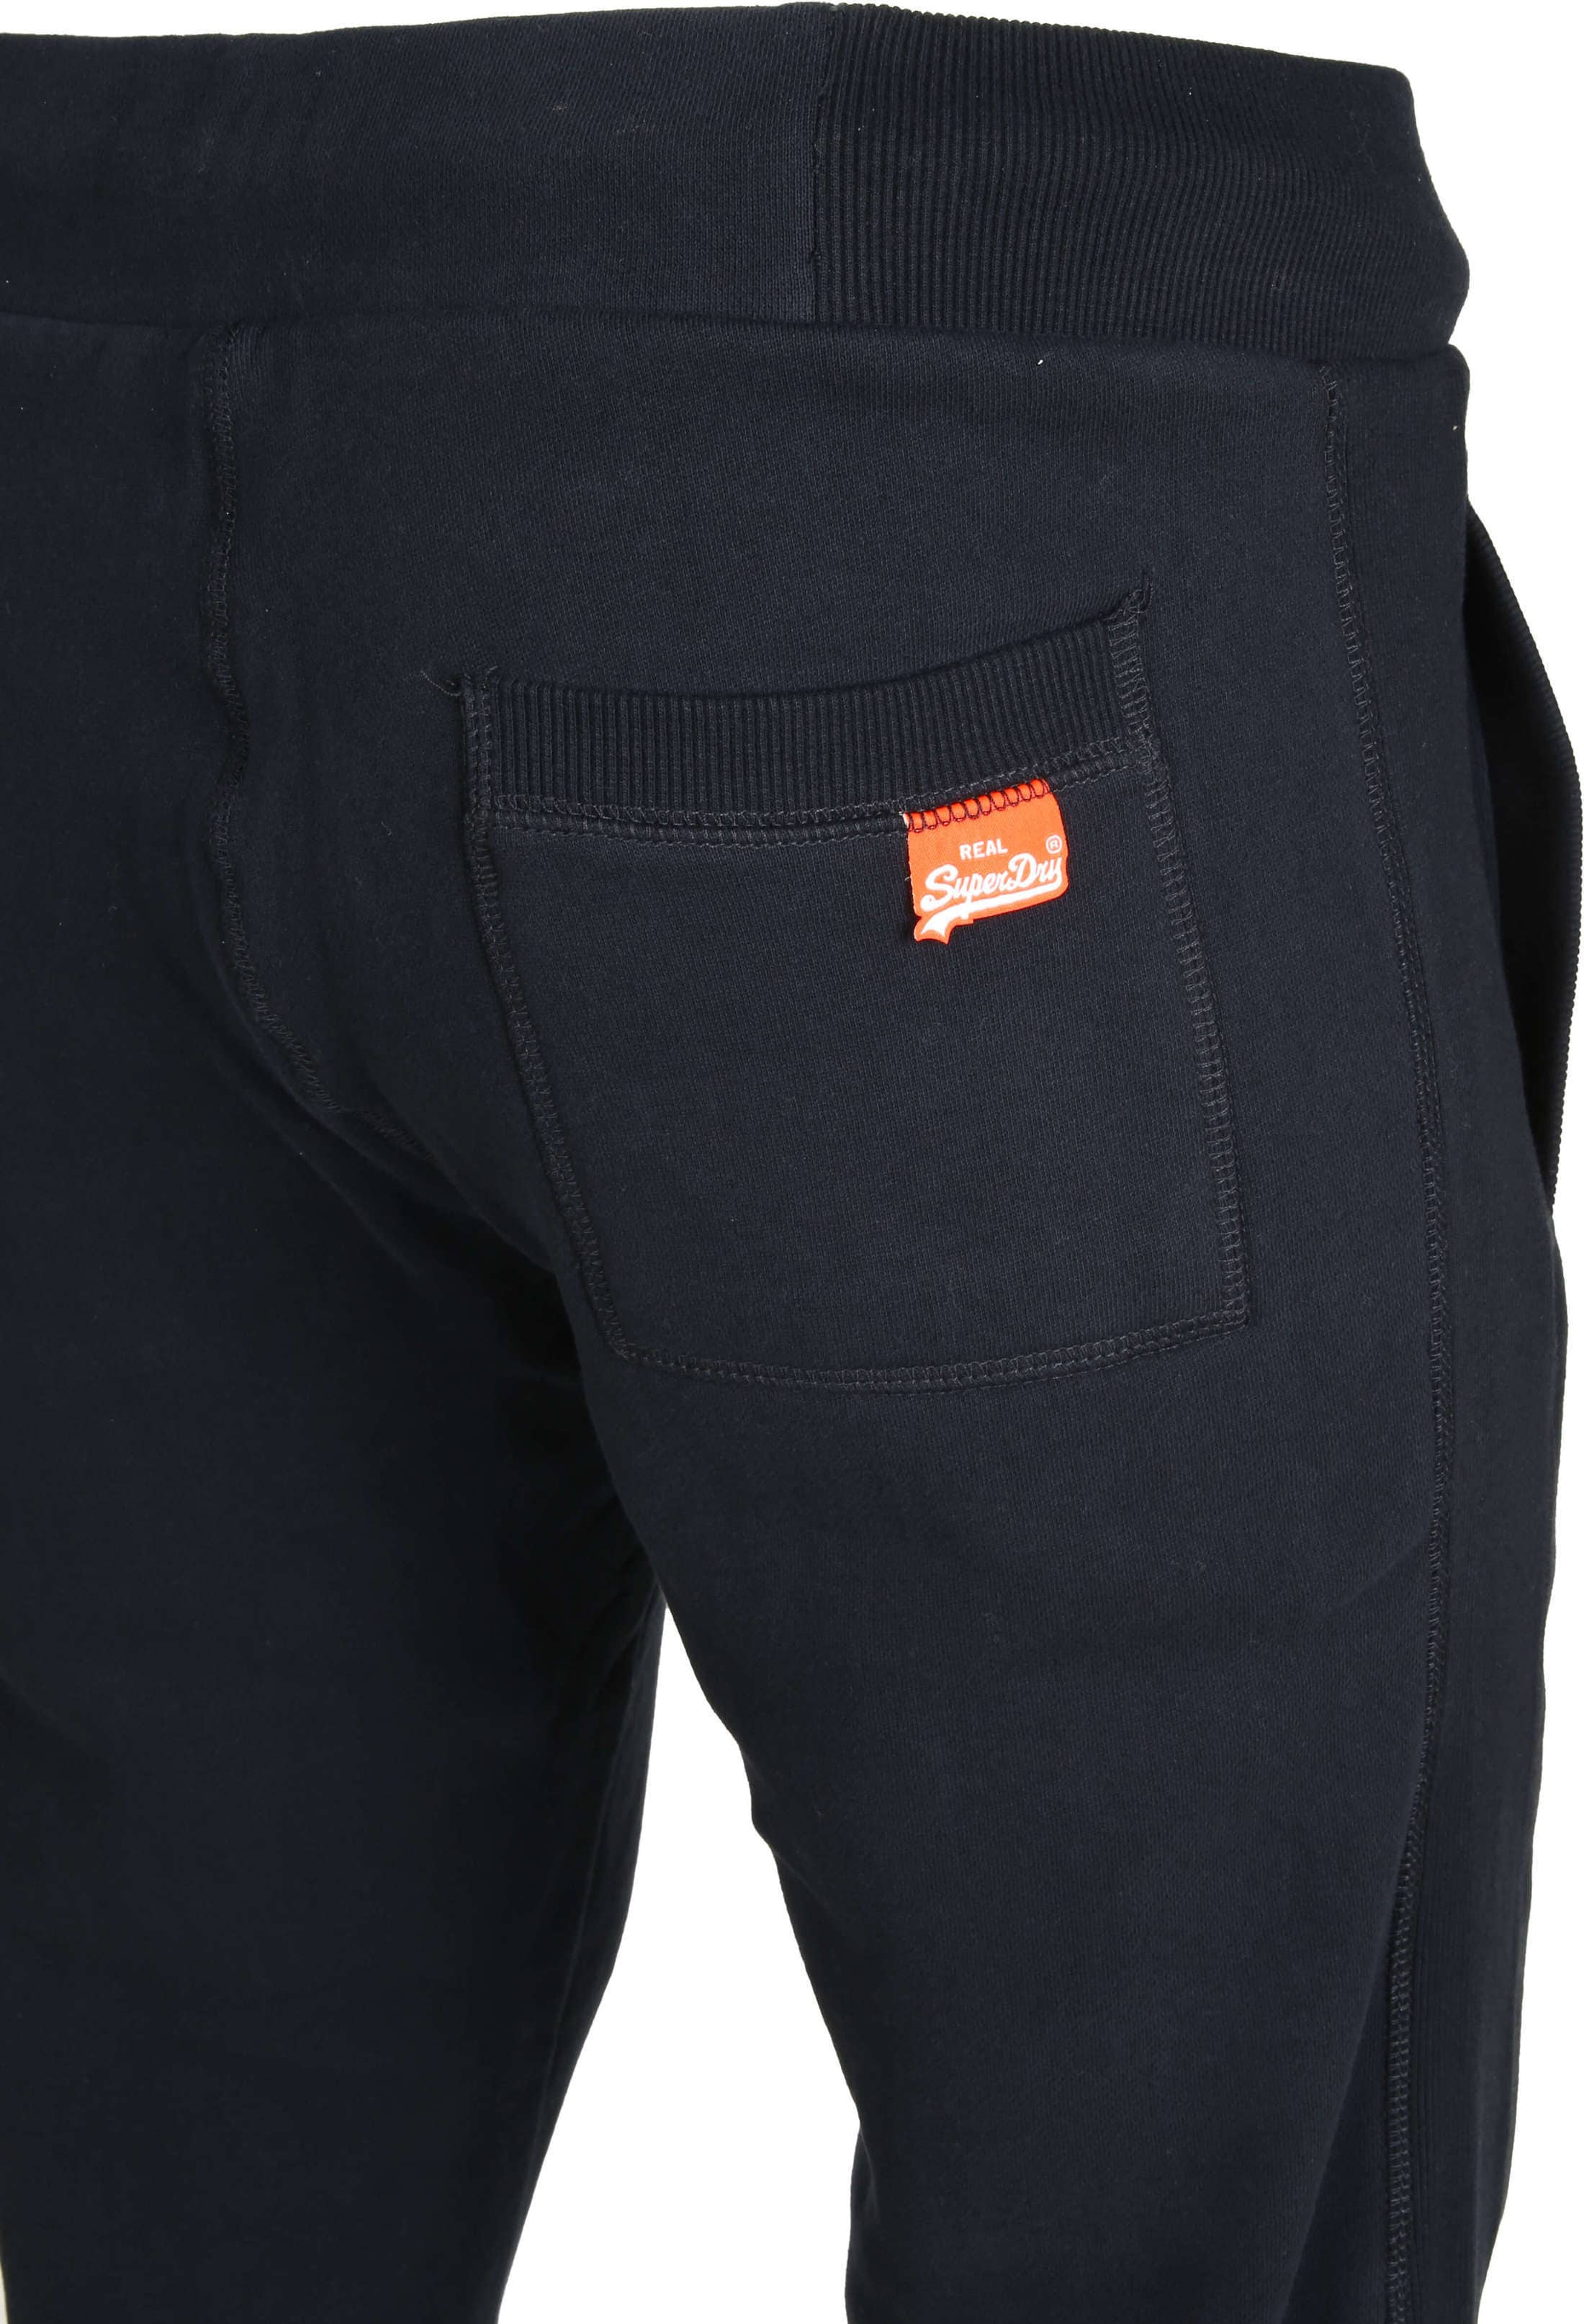 Superdry Sweatpants Navy foto 2